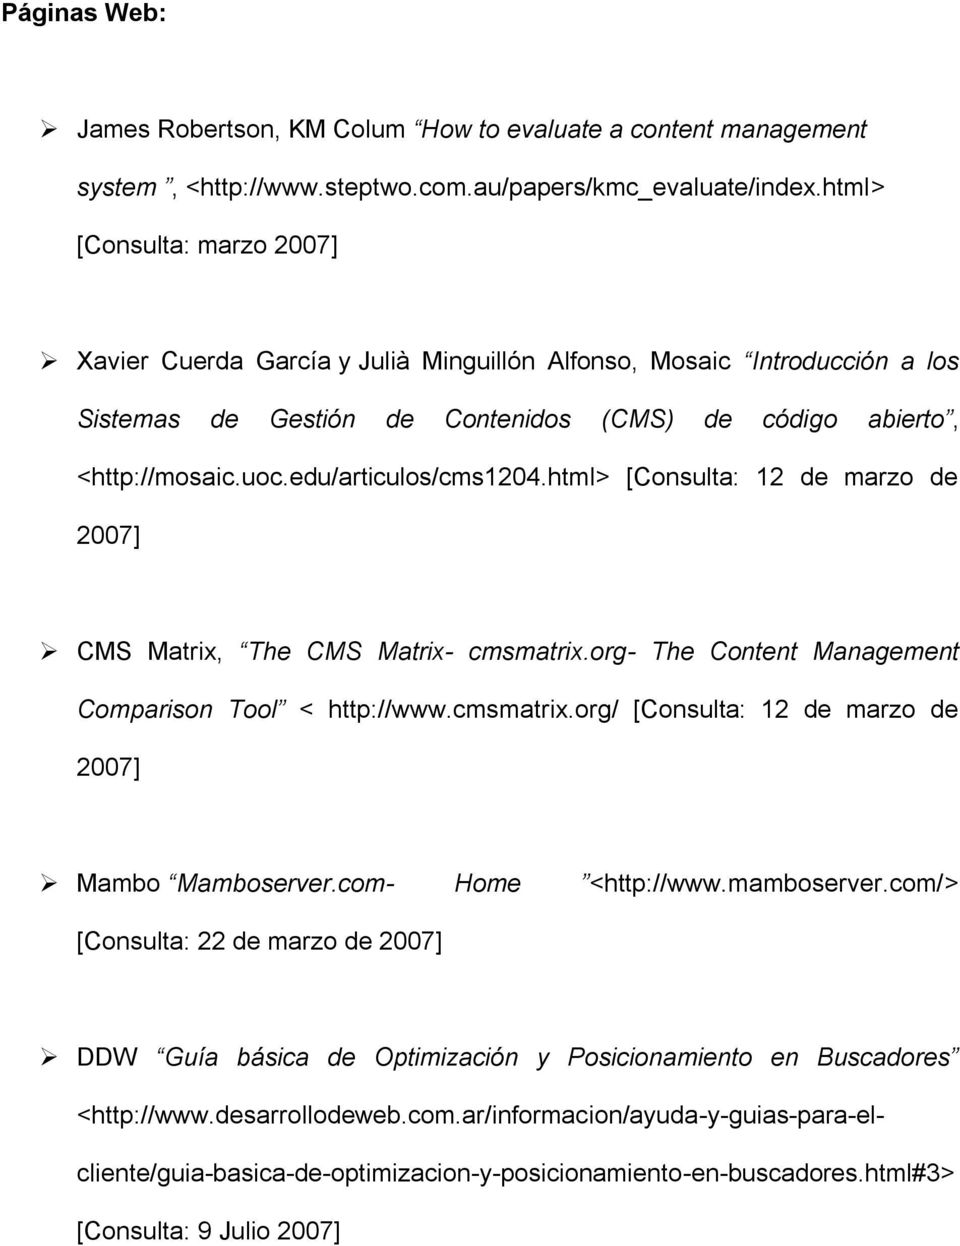 edu/articulos/cms1204.html> [Consulta: 12 de marzo de 2007] CMS Matrix, The CMS Matrix- cmsmatrix.org- The Content Management Comparison Tool < http://www.cmsmatrix.org/ [Consulta: 12 de marzo de 2007] Mambo Mamboserver.